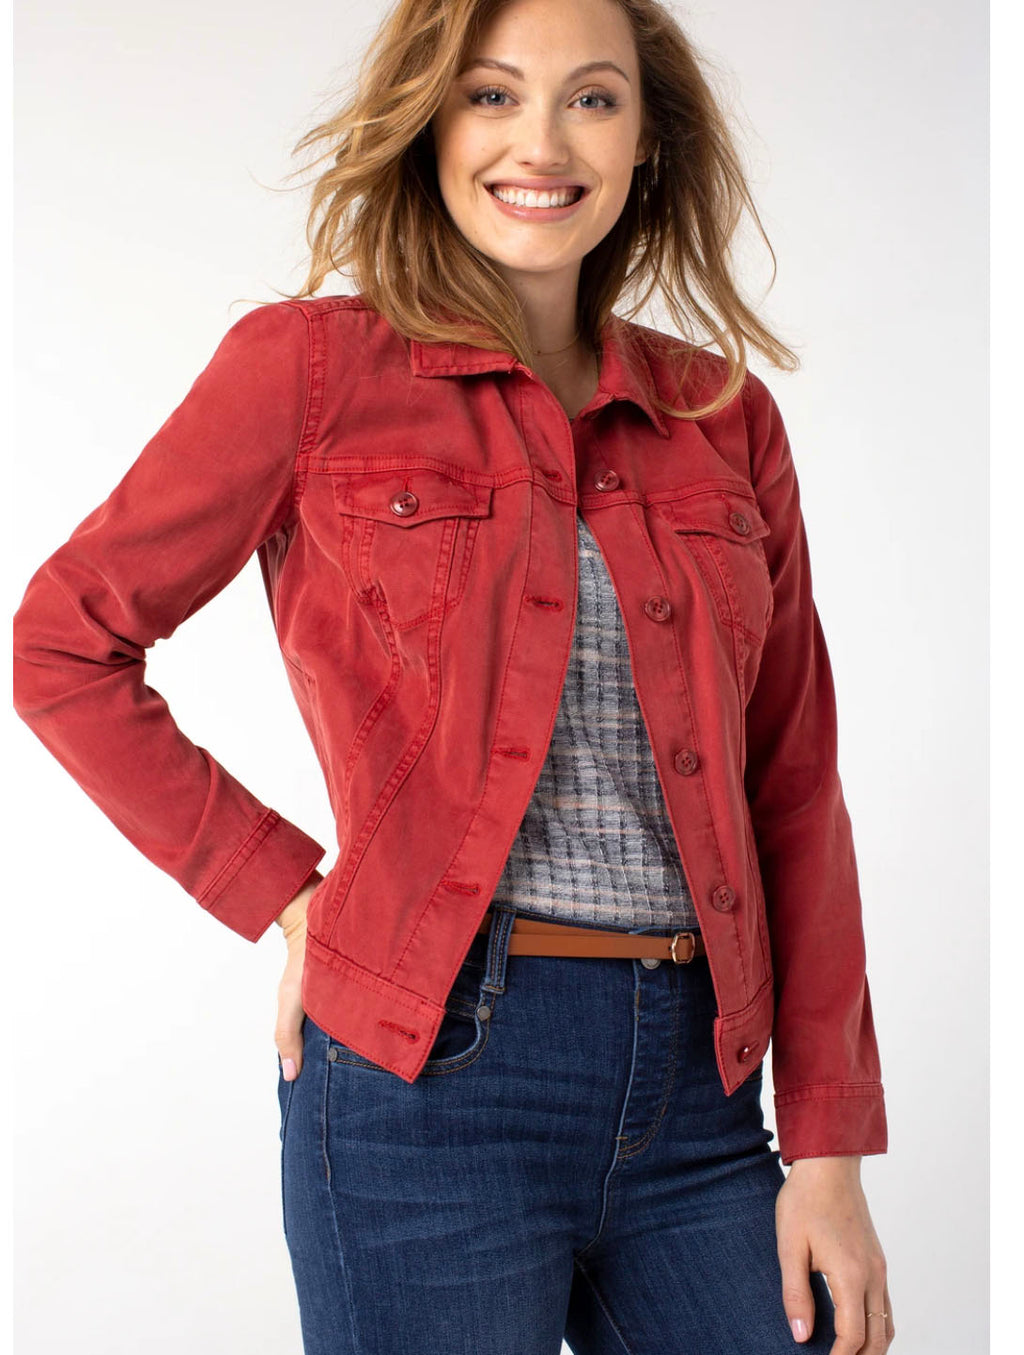 Livepool Denim Jacket in Rouge